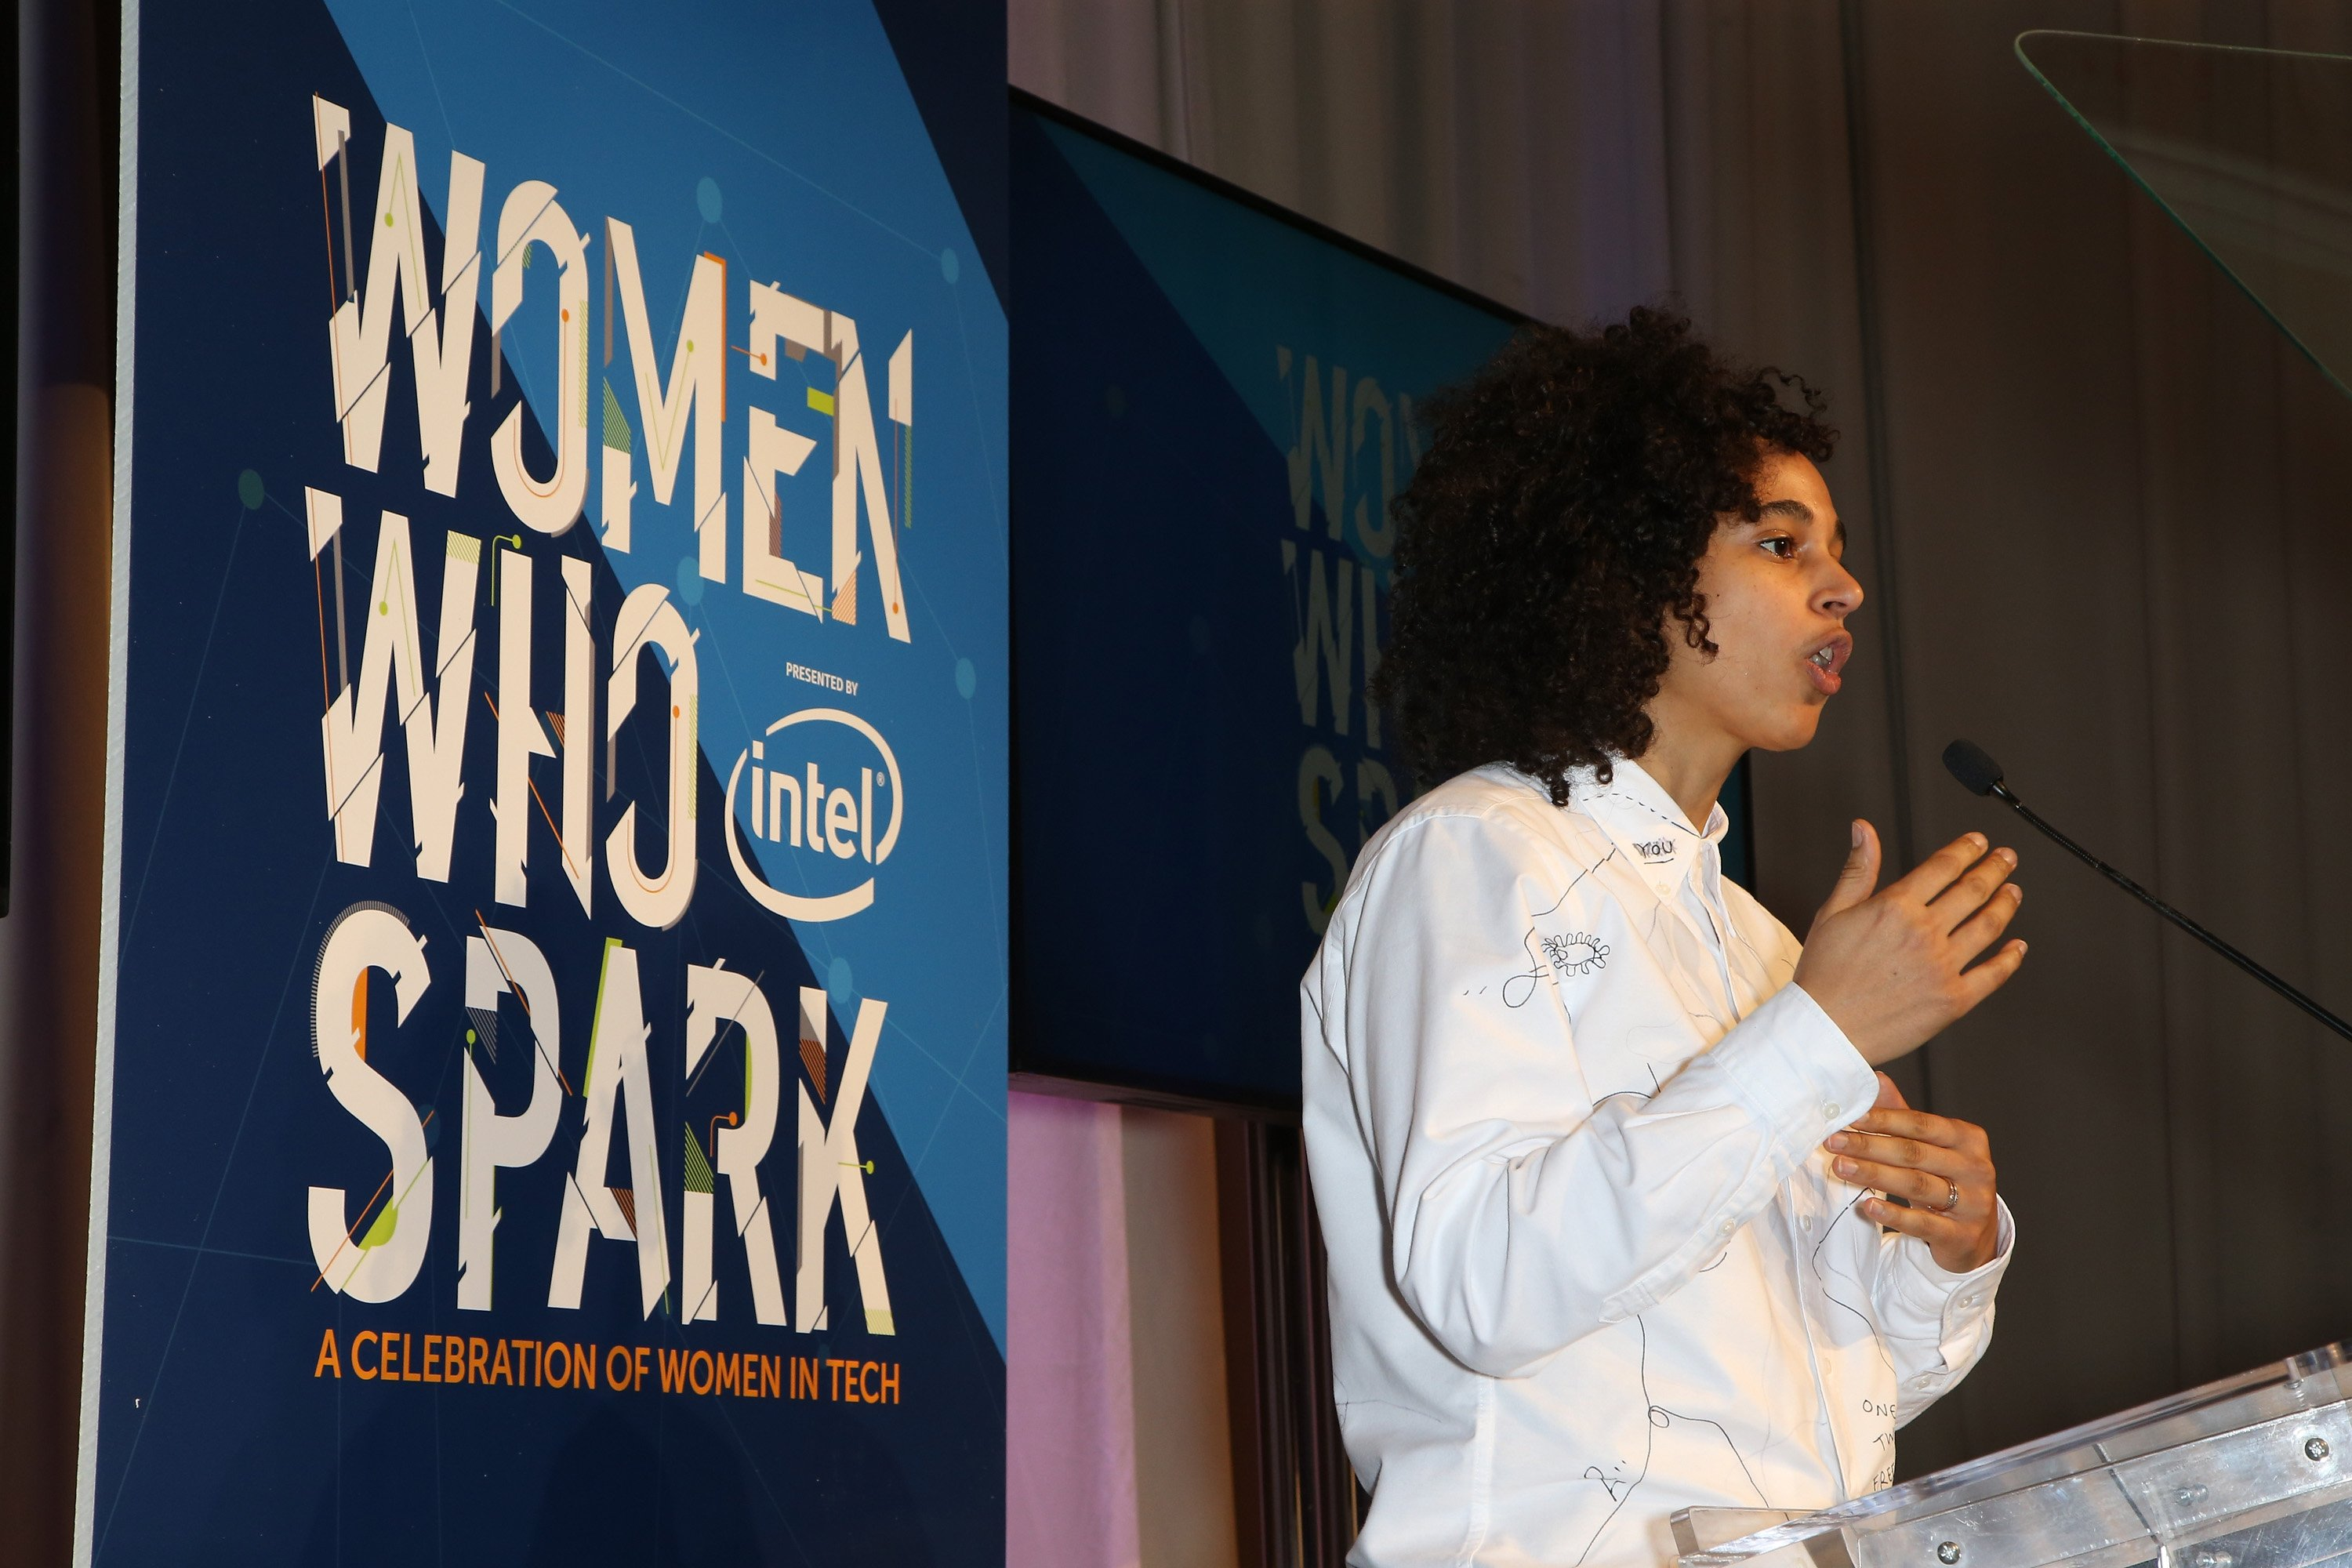 Honoree Shantell Martin speaks during the Women Who Spark Awards presented by Intel on January 7, 2016 in Las Vegas, Nevada. (Photo by Gabe Ginsberg/Getty Images for ESSENCE)